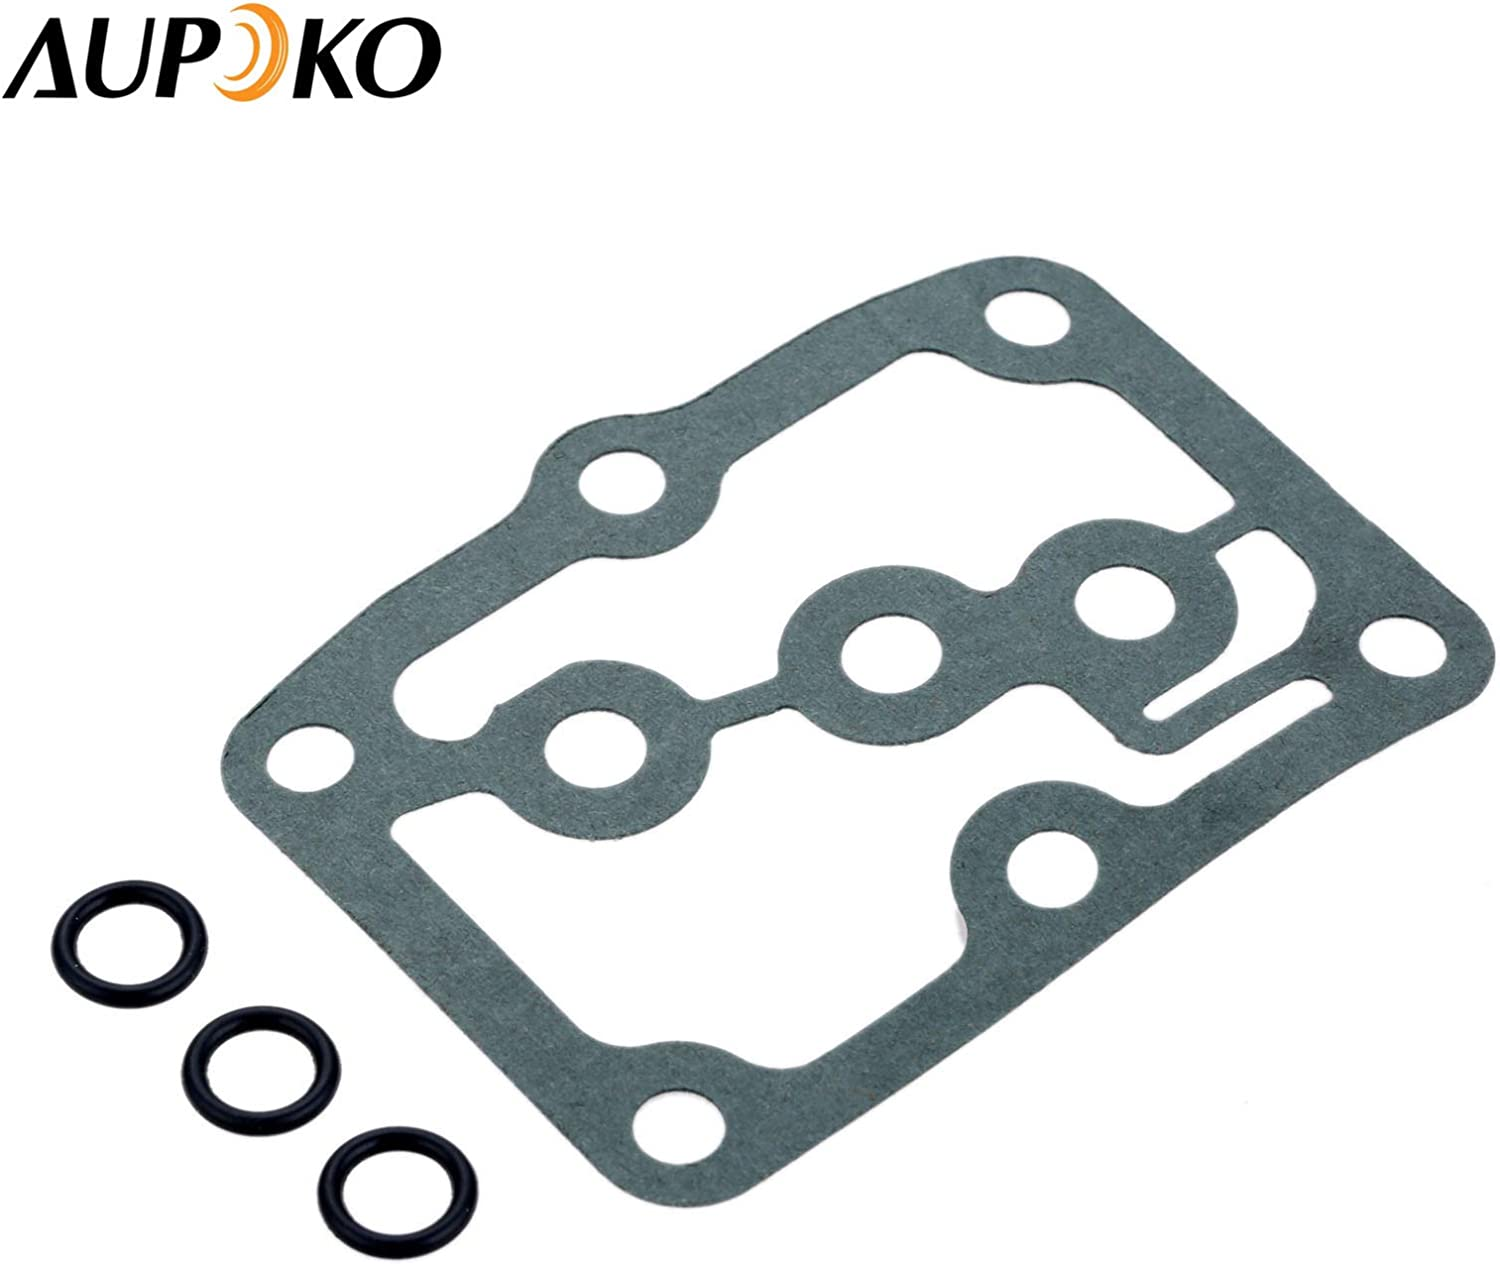 Accord Odyssey Pilot Fits for Honda Acura CL TL MDX Prelude Aupoko Transmission Dual Linear Shift Solenoid with Gasket/&O-Rings Replace# 28250-P6H-024